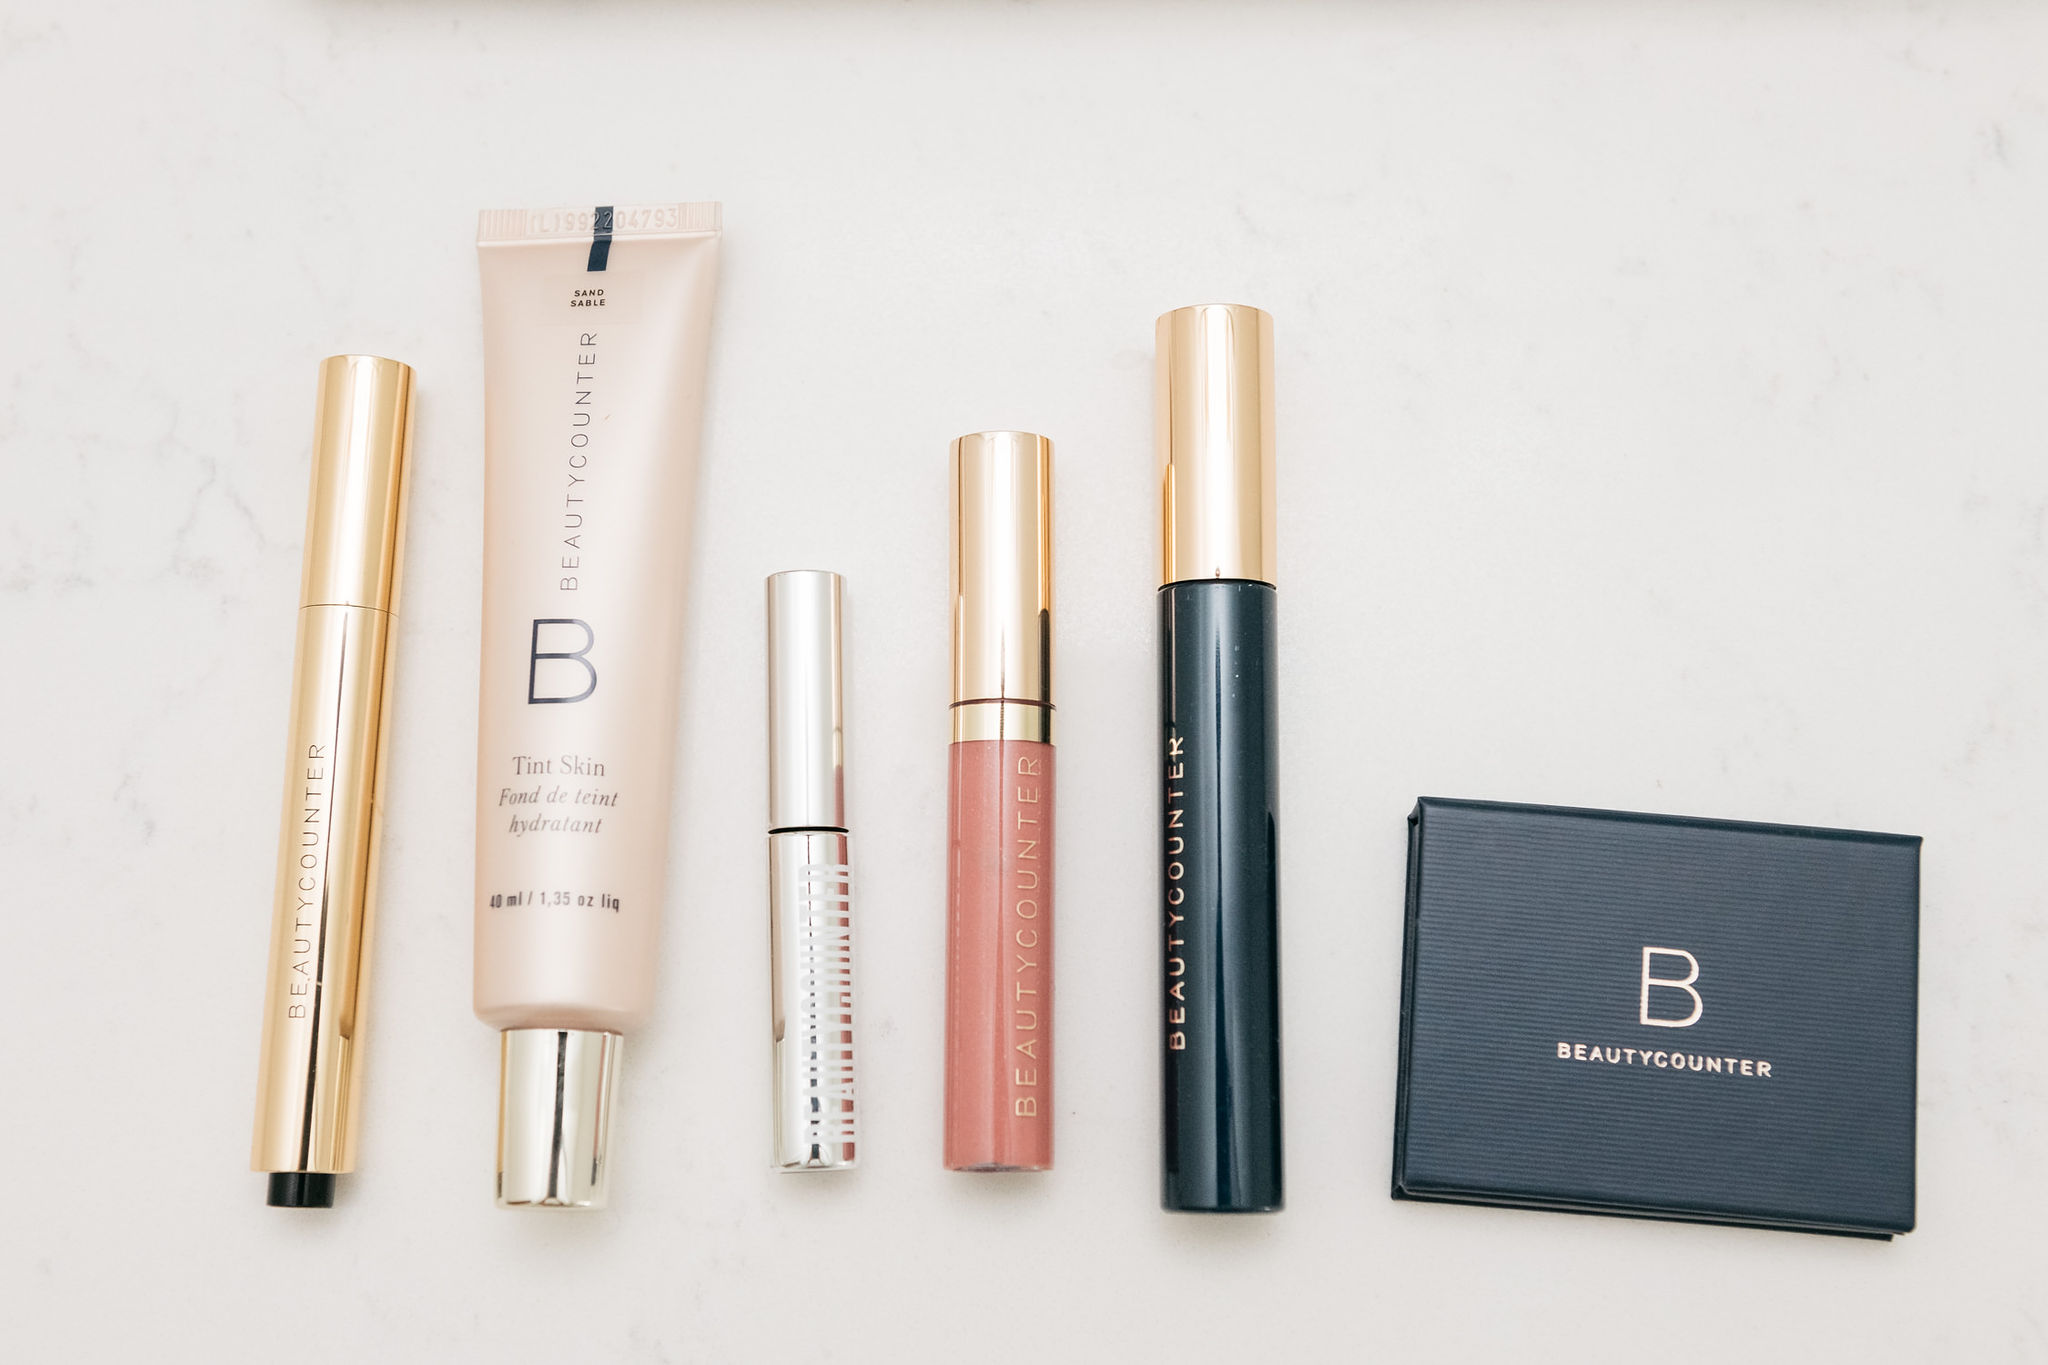 beautycounter flawless in five review (by a non consultant)